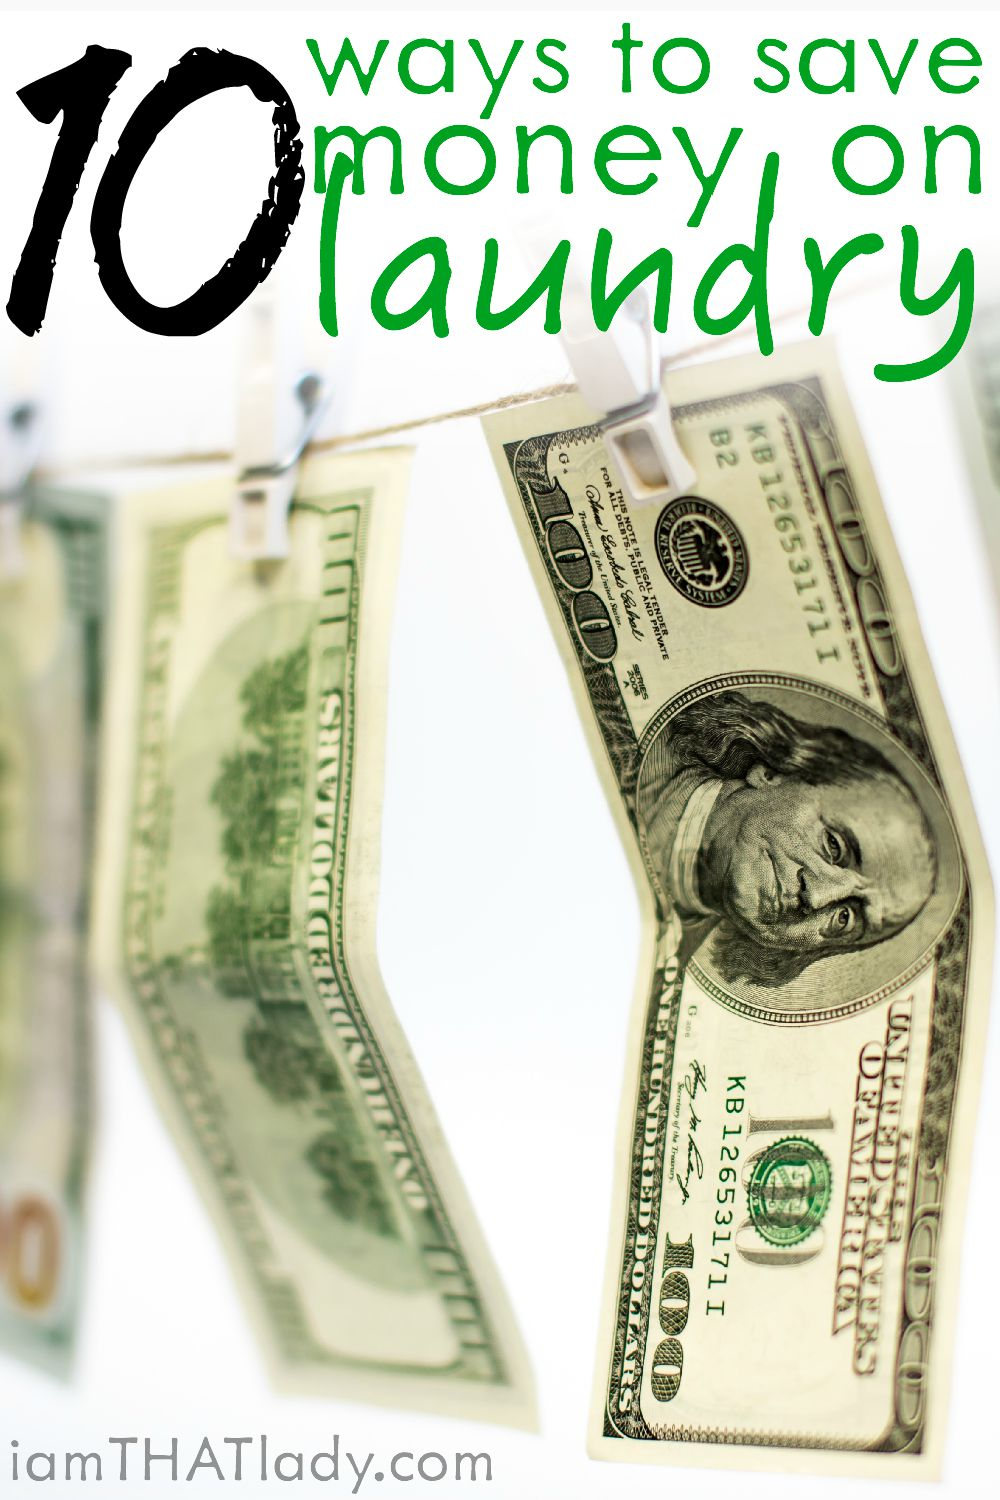 Do you realize that doing laundry can get expensive? We don't usually think of it this way, but it is! Here are 10 Ways to Save Money on Laundry!